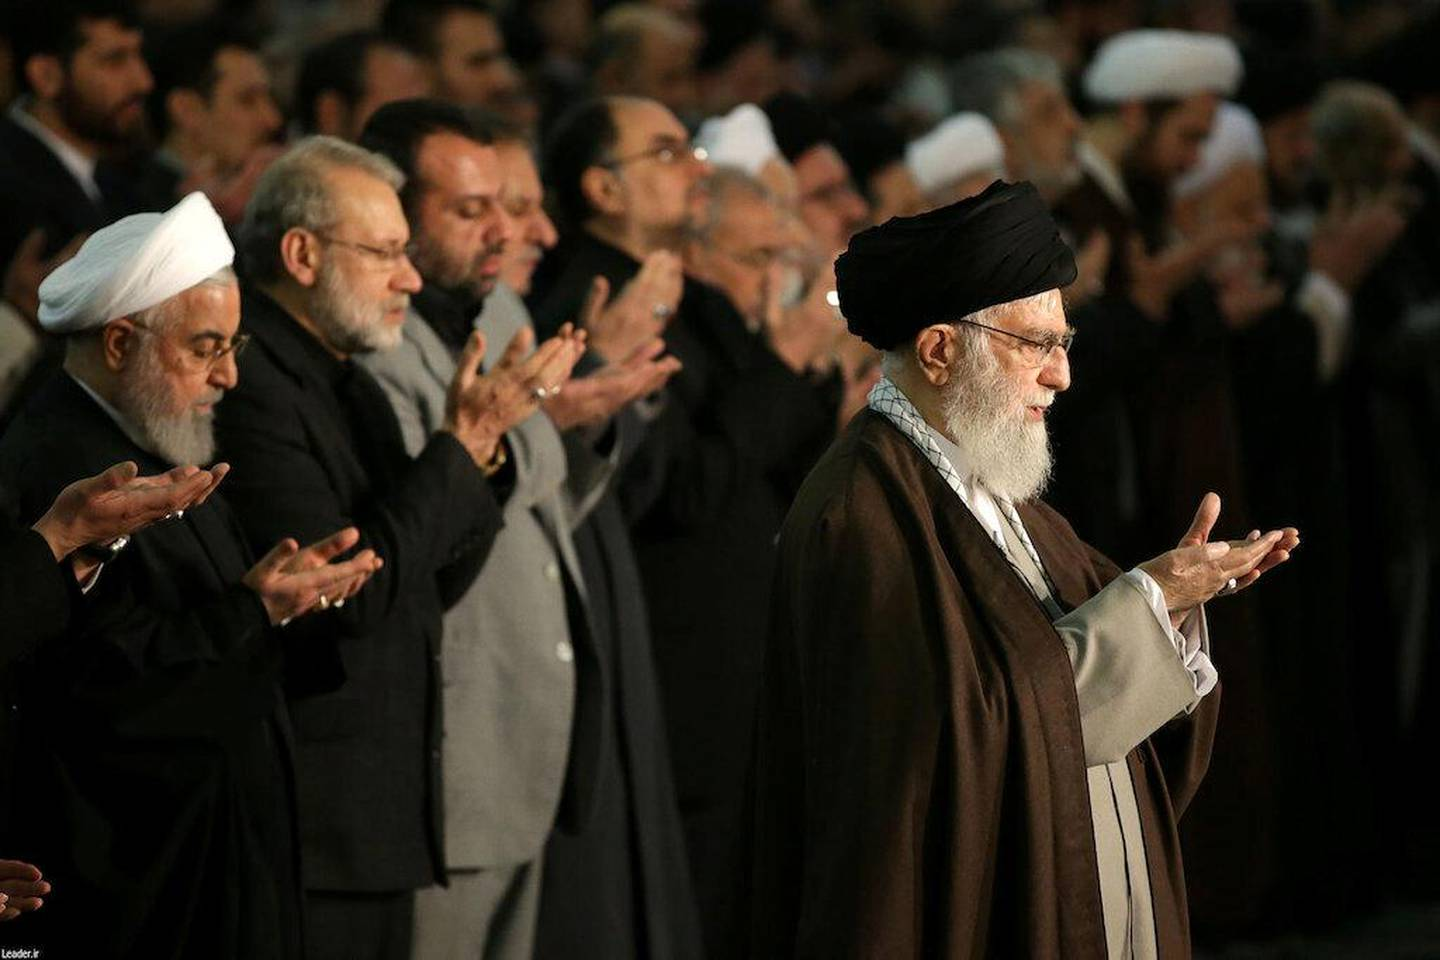 Iranian President Hassan Rouhani attends Friday prayers sermon led by the Iran's Supreme Leader Ayatollah Ali Khamenei, in Tehran, Iran January 17, 2020. Official Khamenei website/Handout via REUTERS ATTENTION EDITORS - THIS IMAGE WAS PROVIDED BY A THIRD PARTY. NO RESALES. NO ARCHIVES